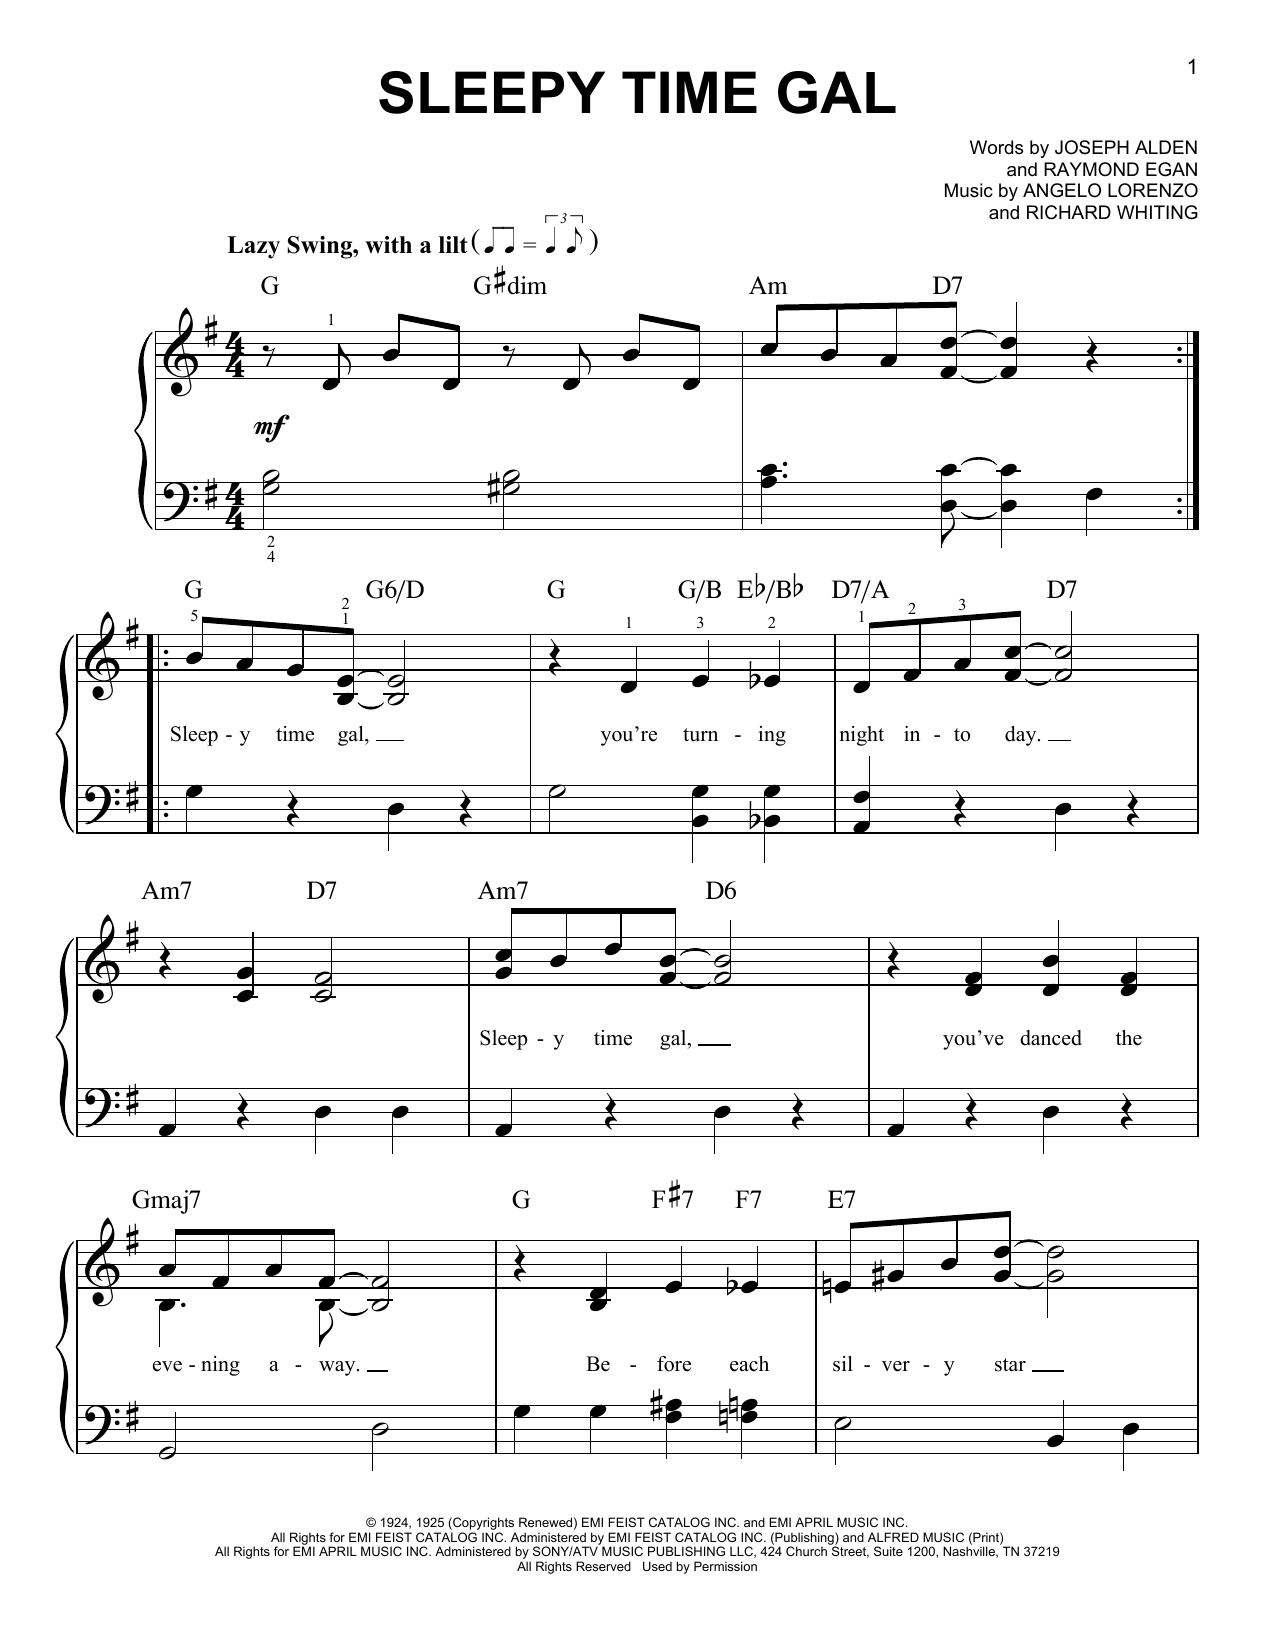 Angelo Lorenzo Sleepy Time Gal sheet music notes and chords. Download Printable PDF.